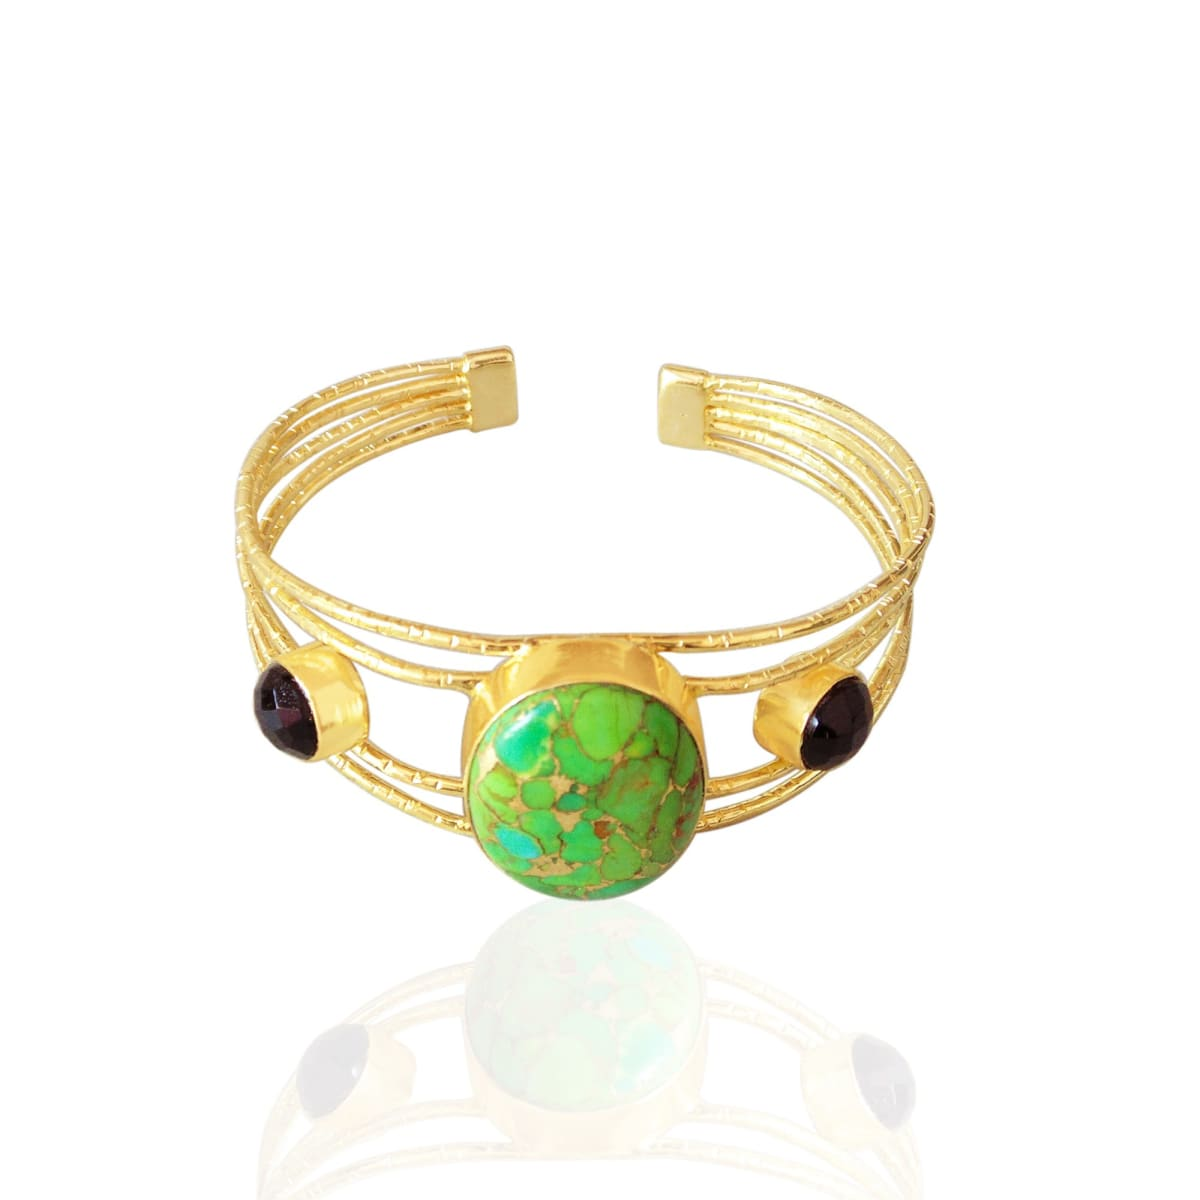 Natural Green Copper Turquoise And Black Onyx Two Gemstone Designer Cuff Bracelet - by Bhagat Jewels